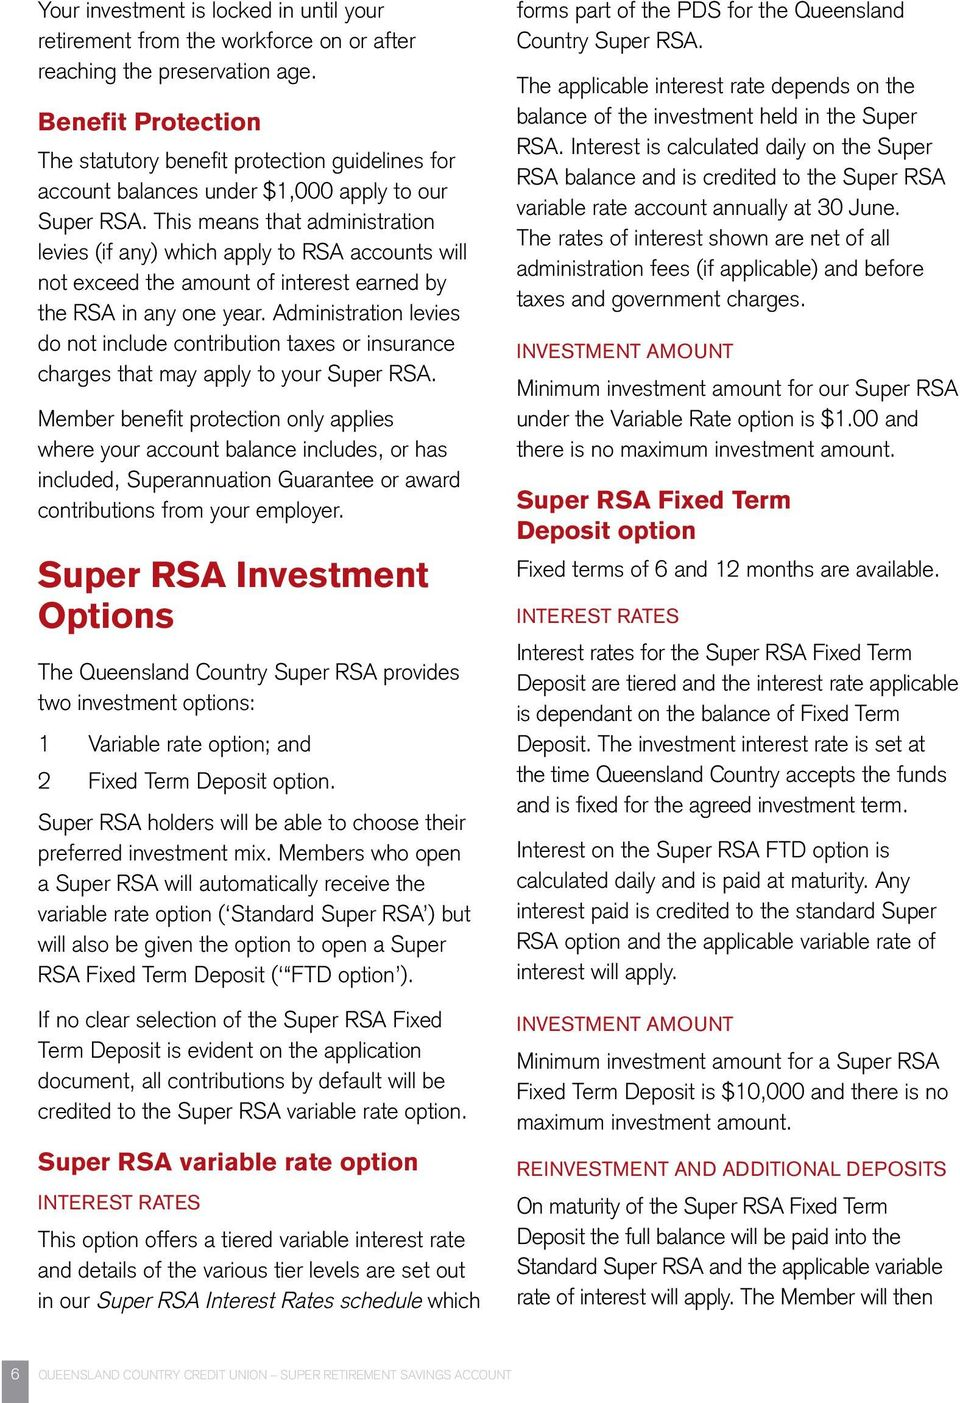 This means that administration levies (if any) which apply to RSA accounts will not exceed the amount of interest earned by the RSA in any one year.